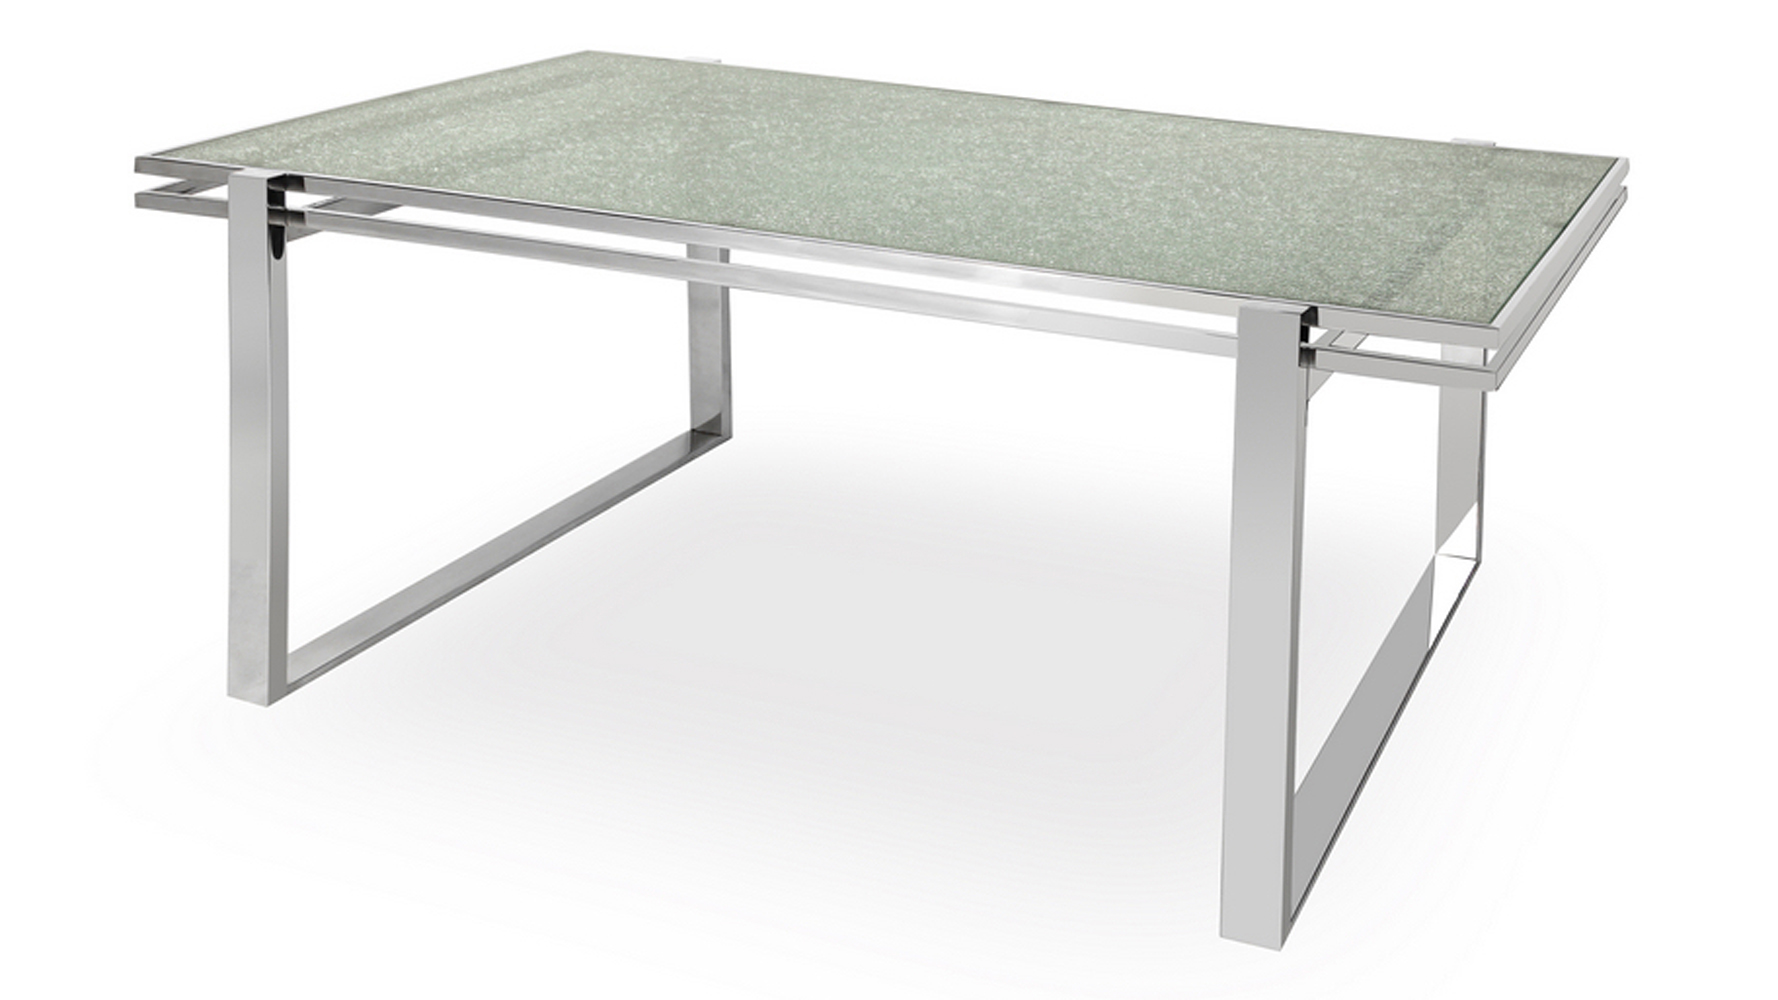 Mosaic dining table cracked glass top stainless steel bas - Broken glass dining table ...